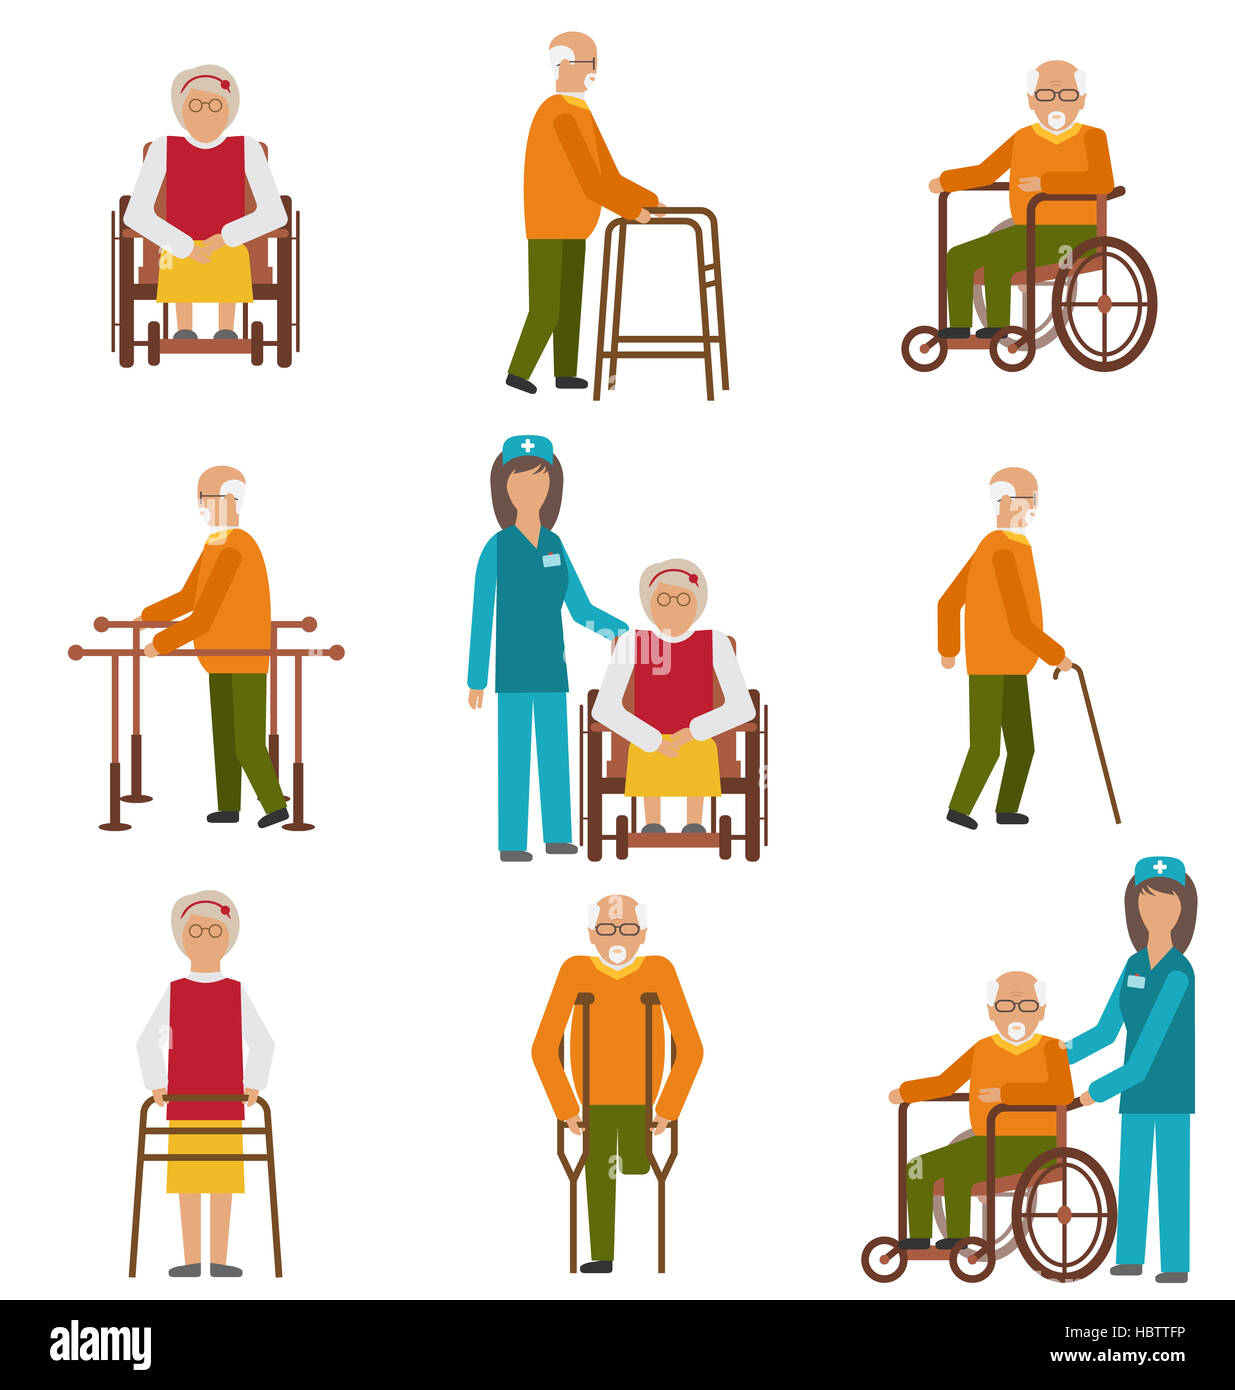 Various Degrees of Injuries and Disabilities - Stock Image